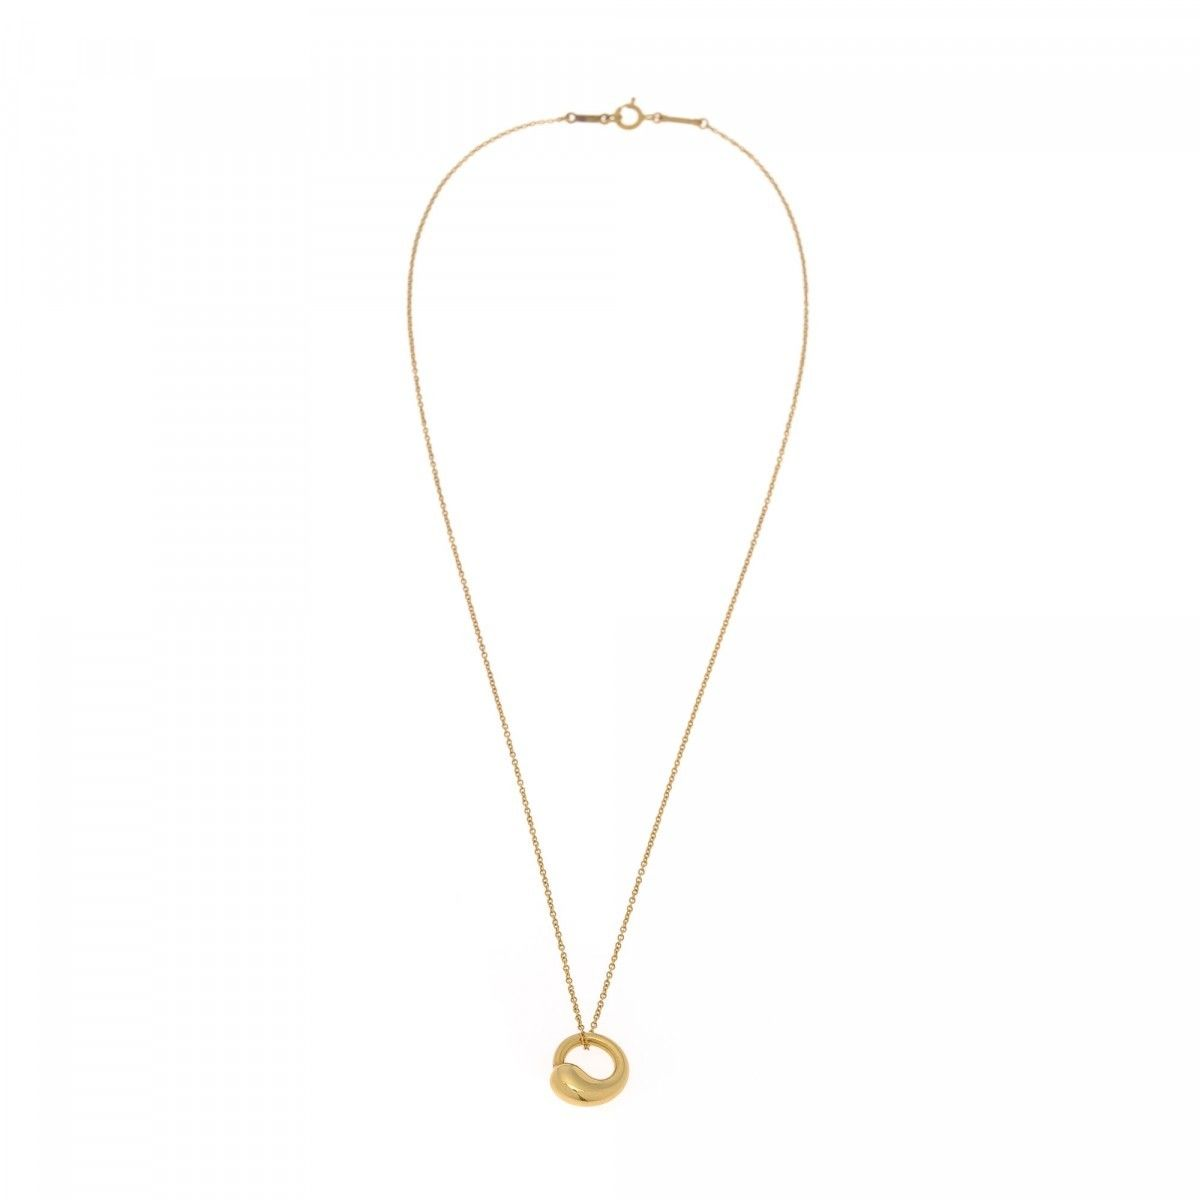 Tiffany elsa peretti eternal circle pendant necklace 40cm 18k gold elsa peretti eternal circle pendant necklace 40cm mozeypictures